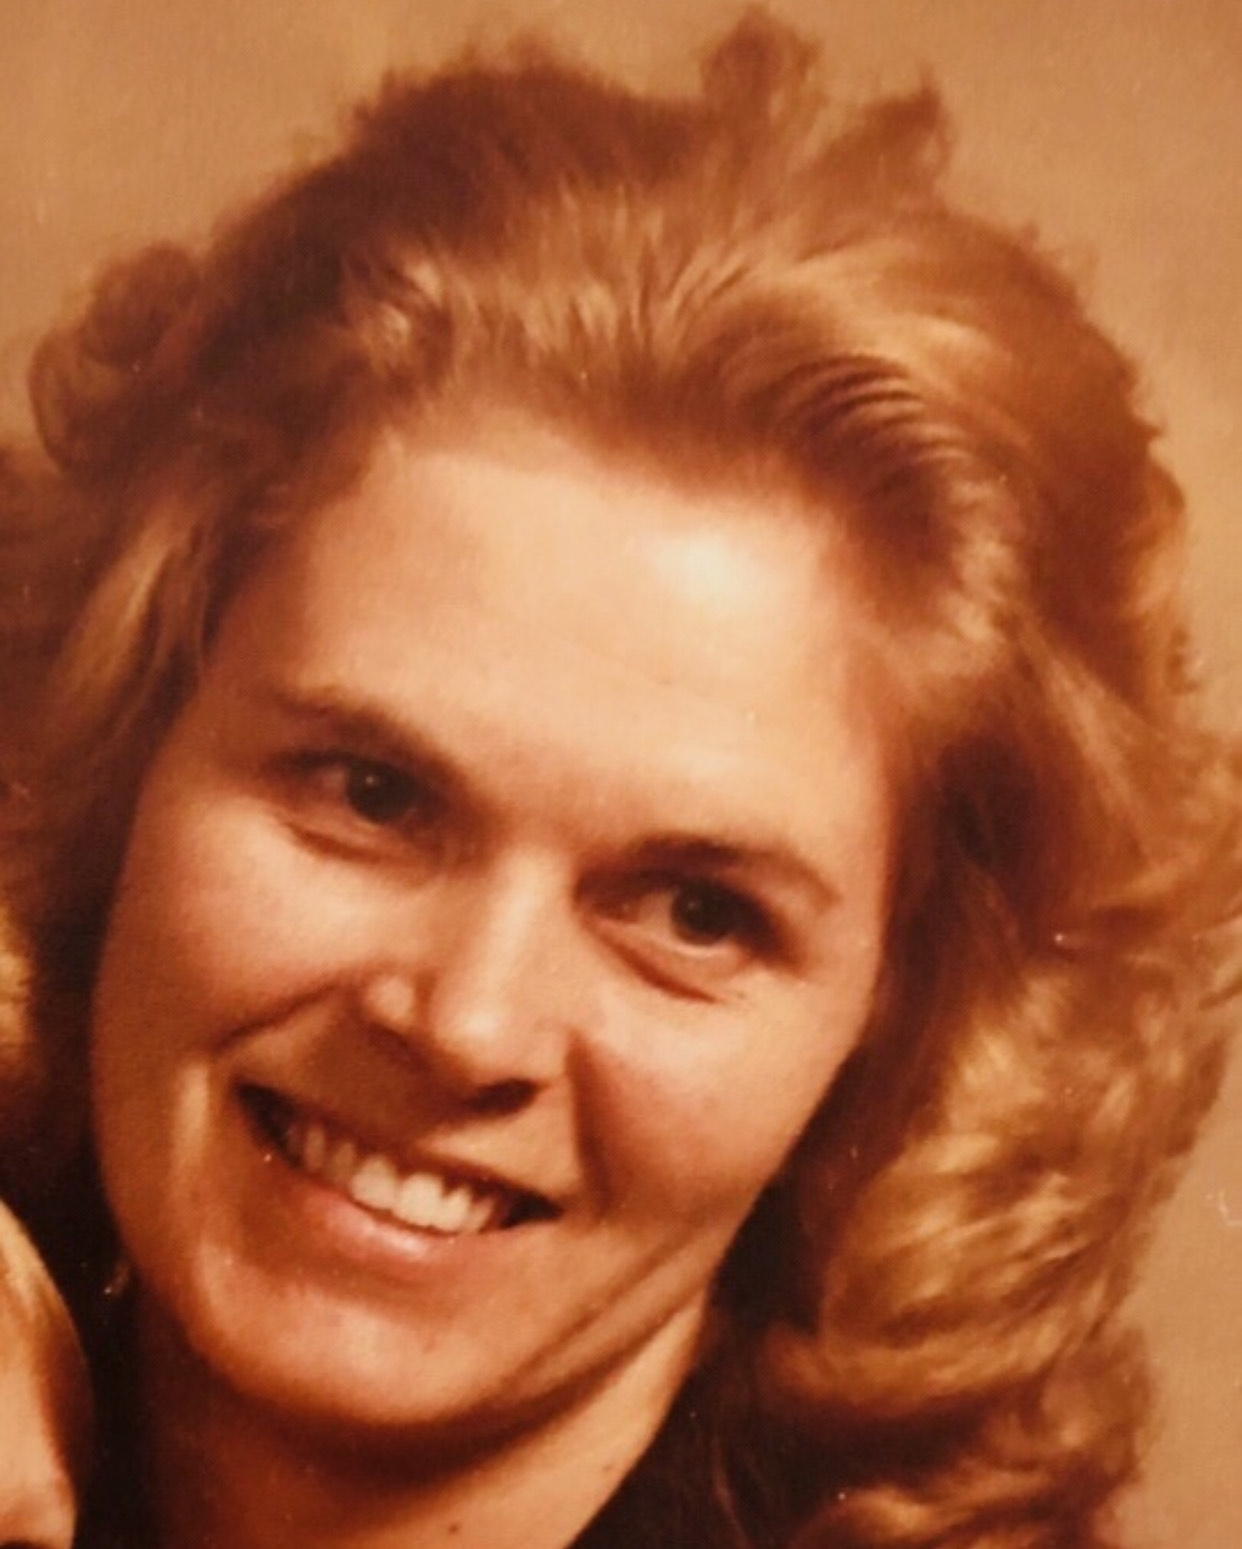 Susan Hopper obit photo 1 - Susan Hopper